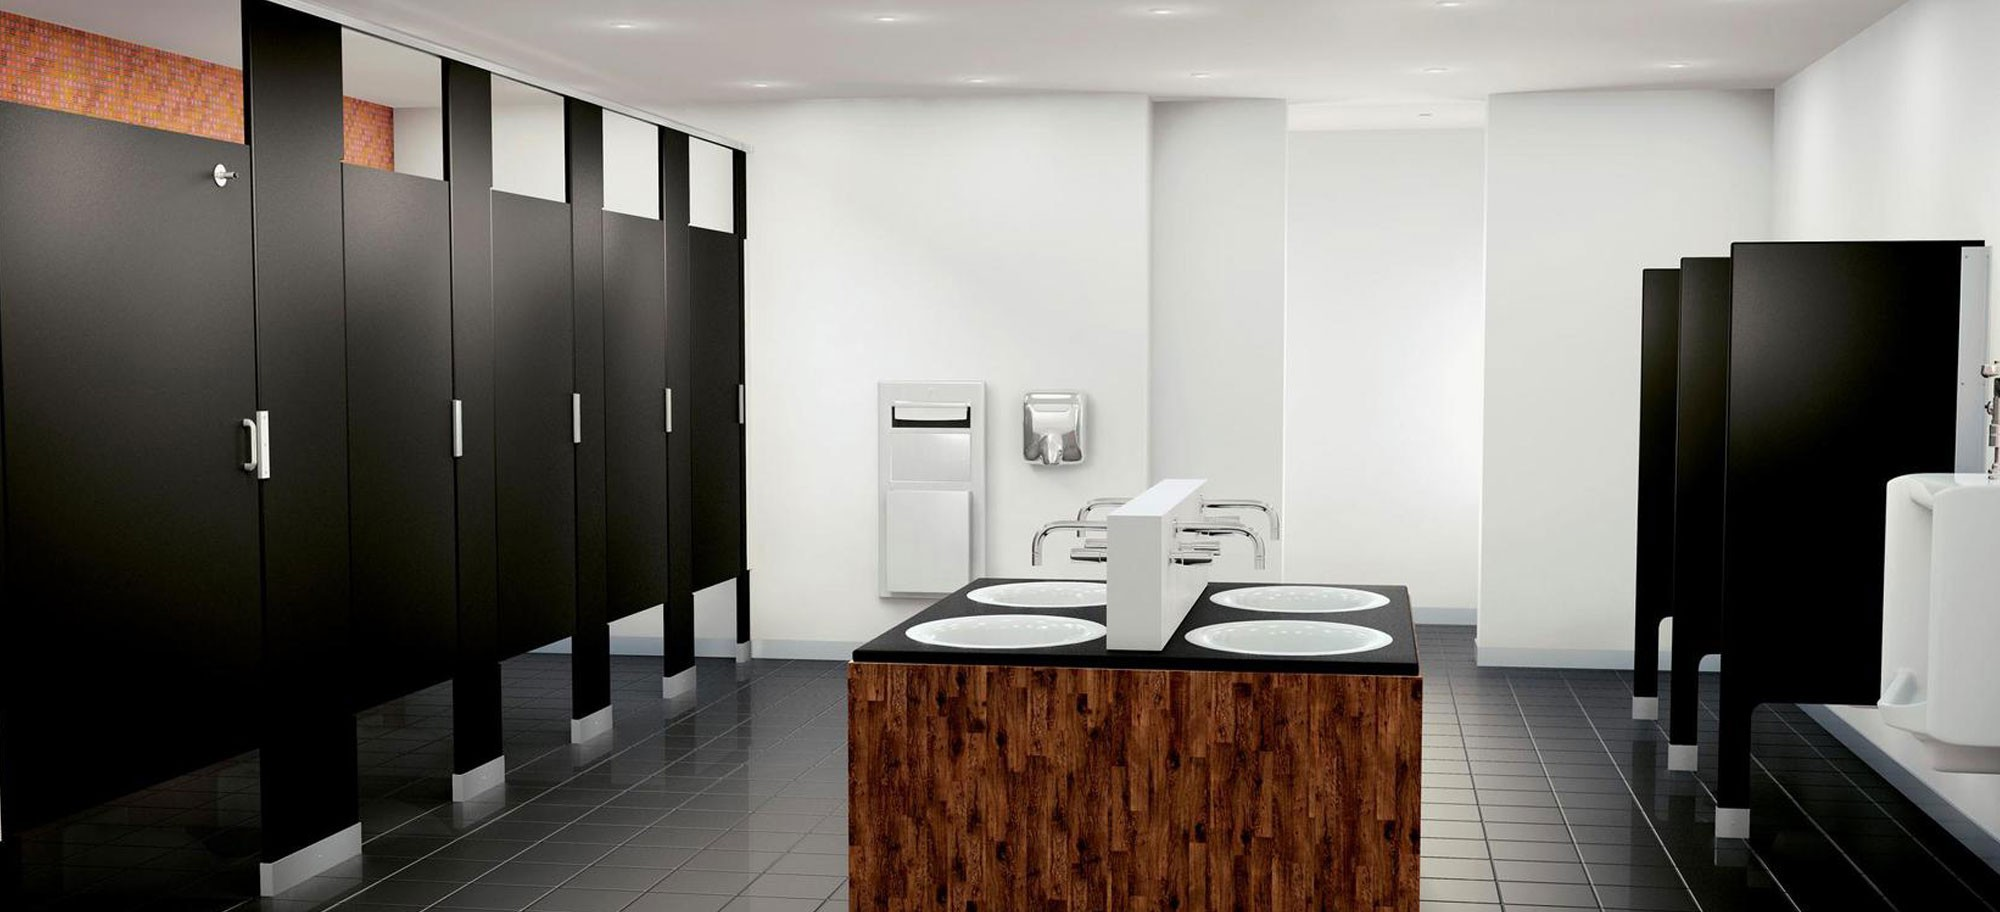 Bathroom Partitions Kitchener wholesale toilet partitions, school lockers – canadian washroom